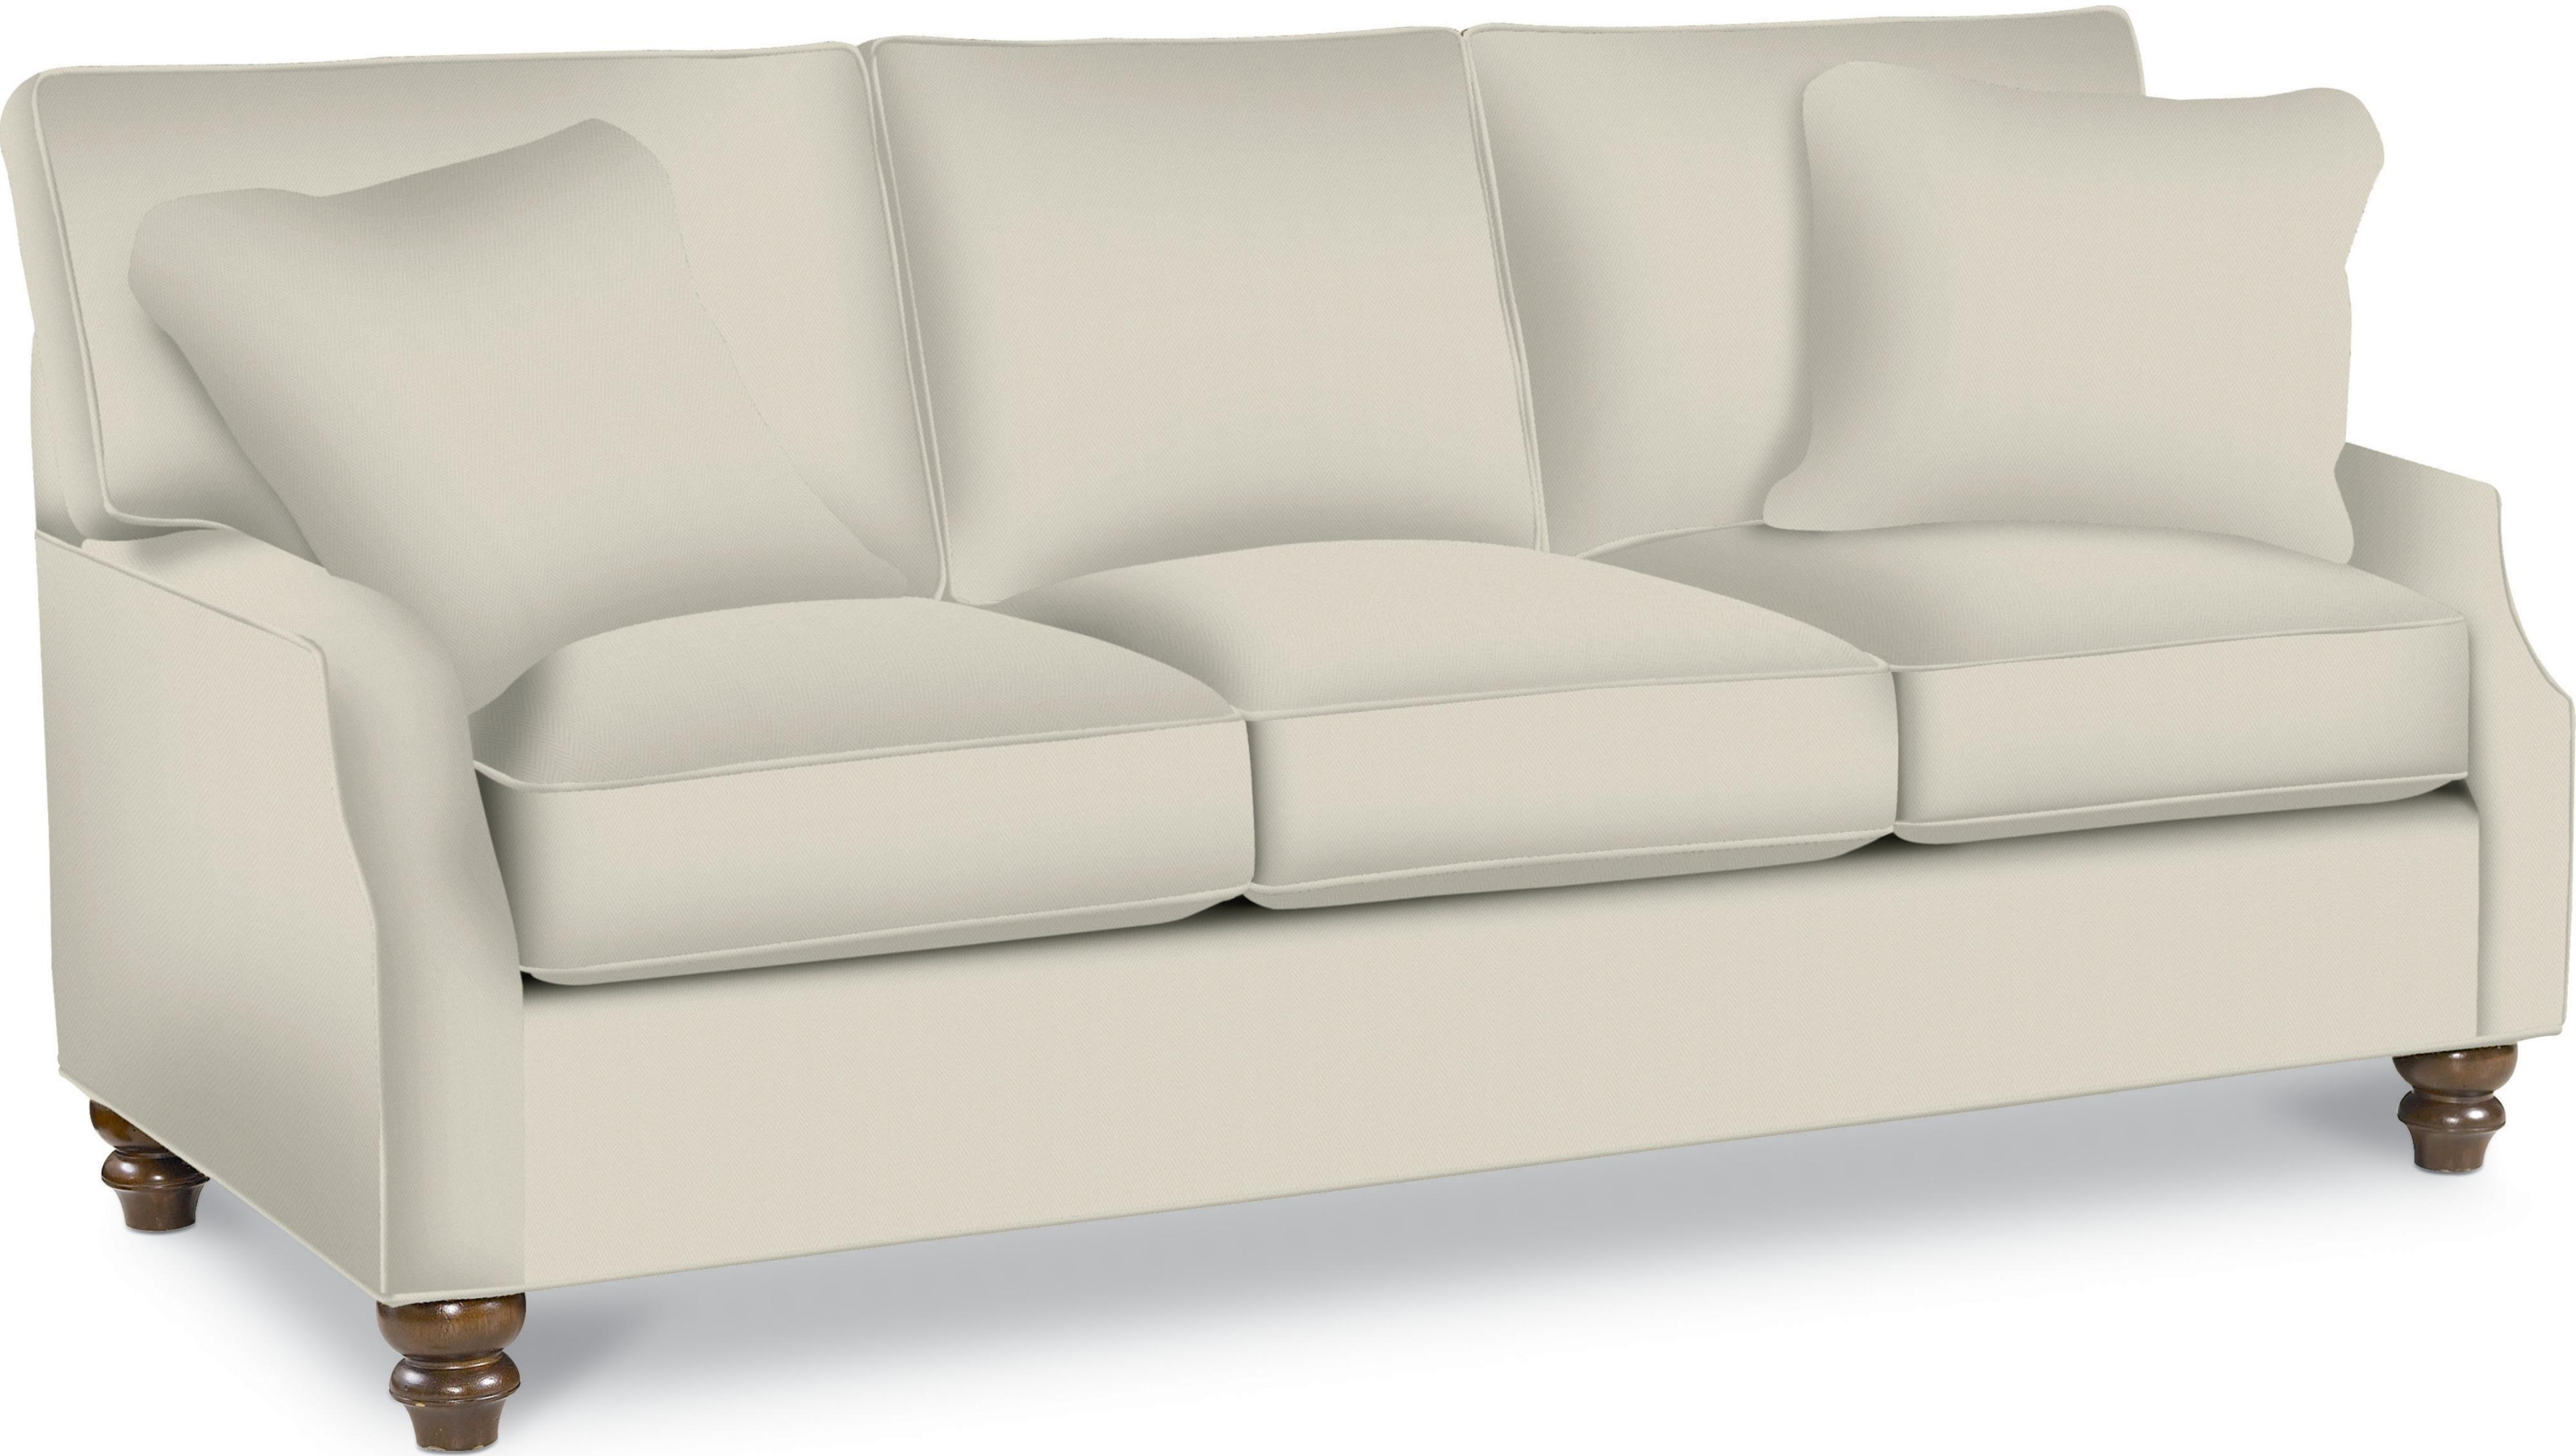 Drexel Drexel Heritage Upholstery Marcello Stationary Sofa | Sprintz  Furniture | Sofas Nashville, Franklin, And Greater Tennessee